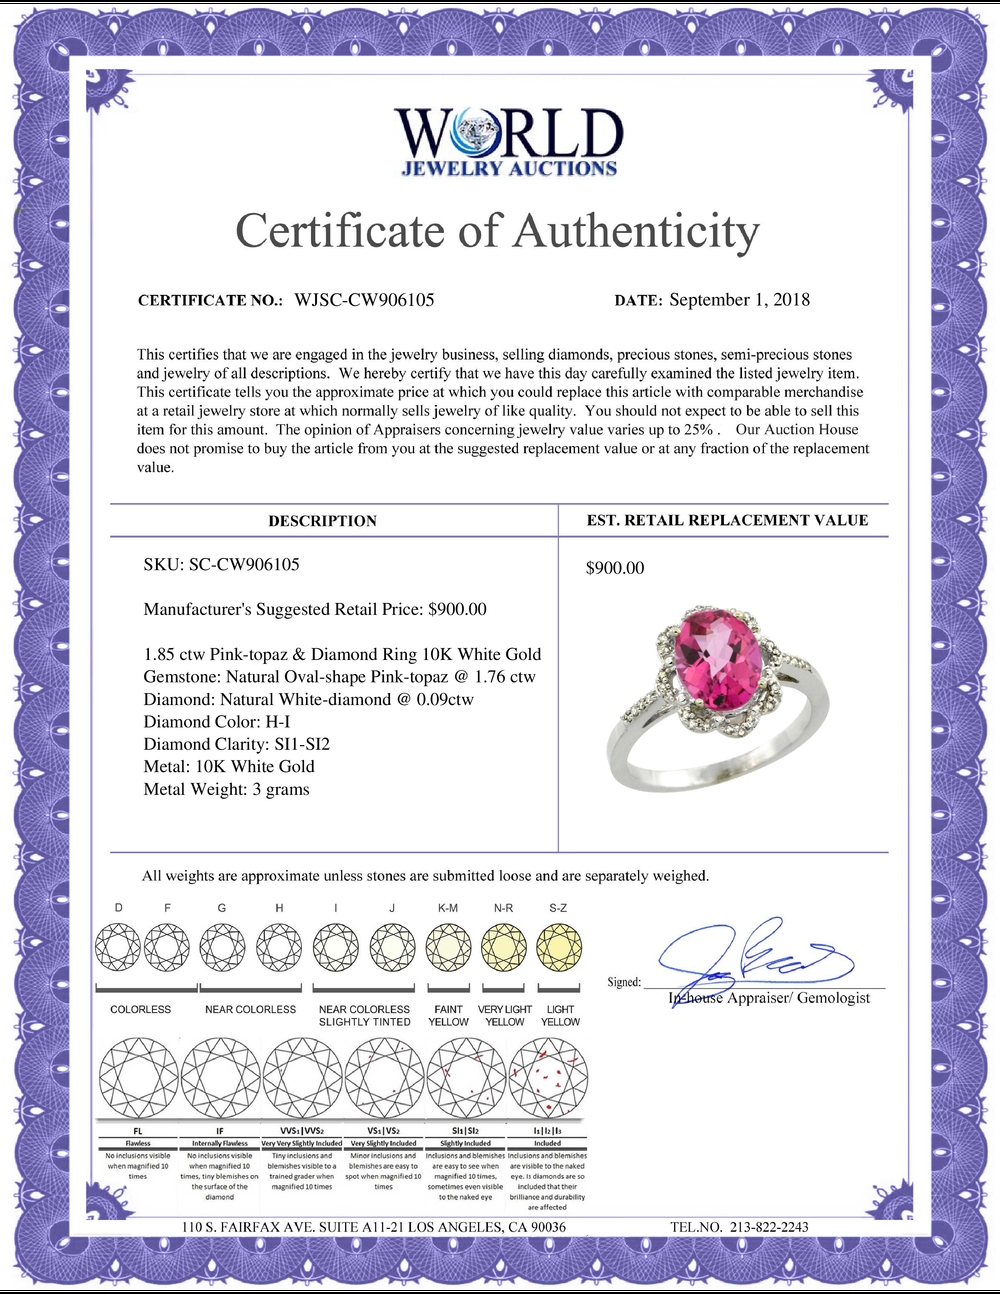 Lot 3120: Natural 1.85 ctw Pink-topaz & Diamond Engagement Ring 10K White Gold - REF-29K3R